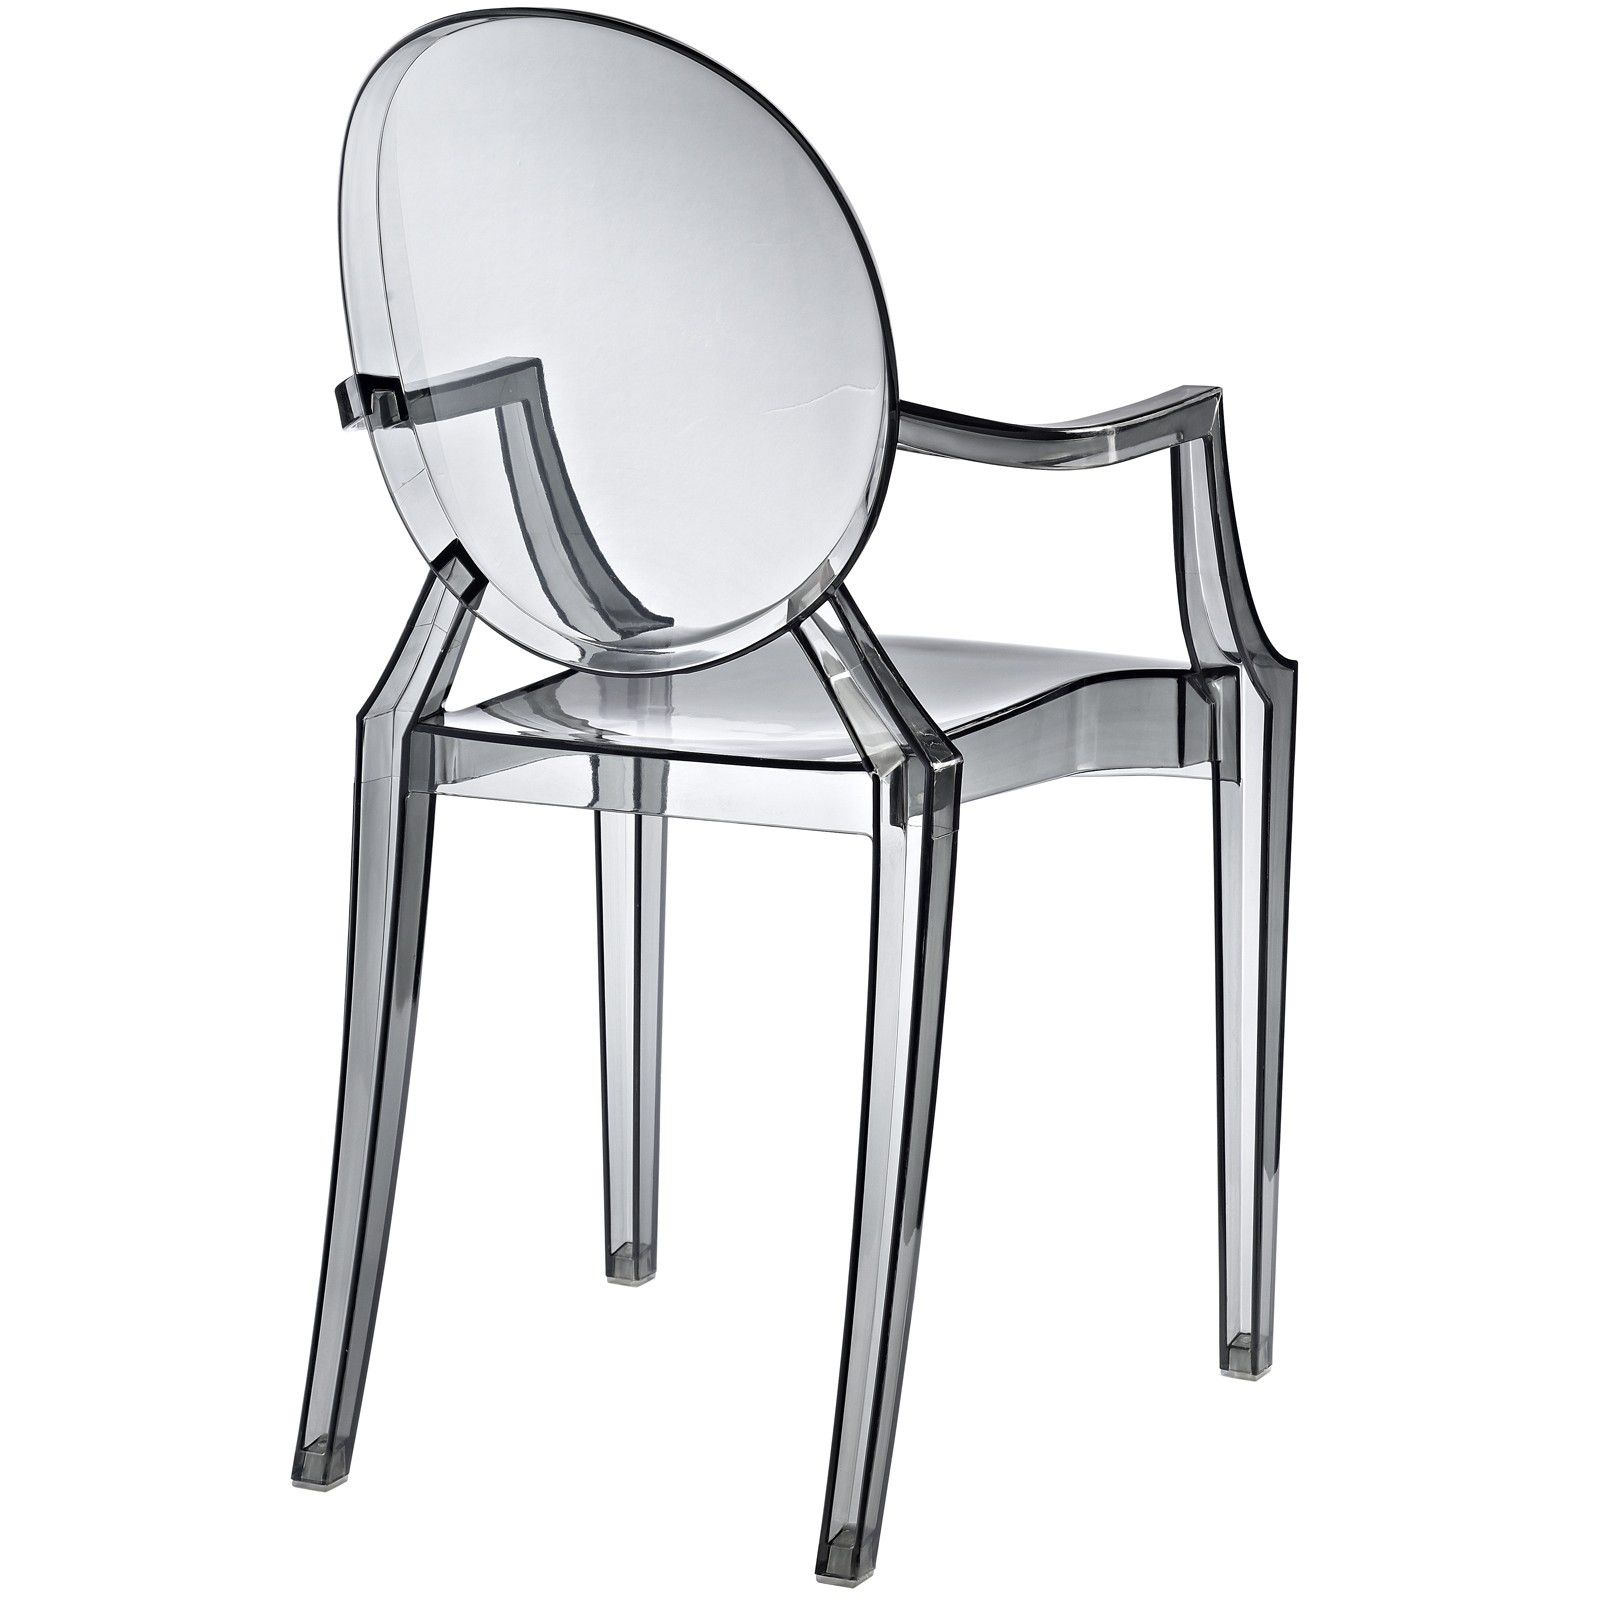 Sedia Louis Ghost Philippe Starck | MY DESIGN AND FORNITURE ...